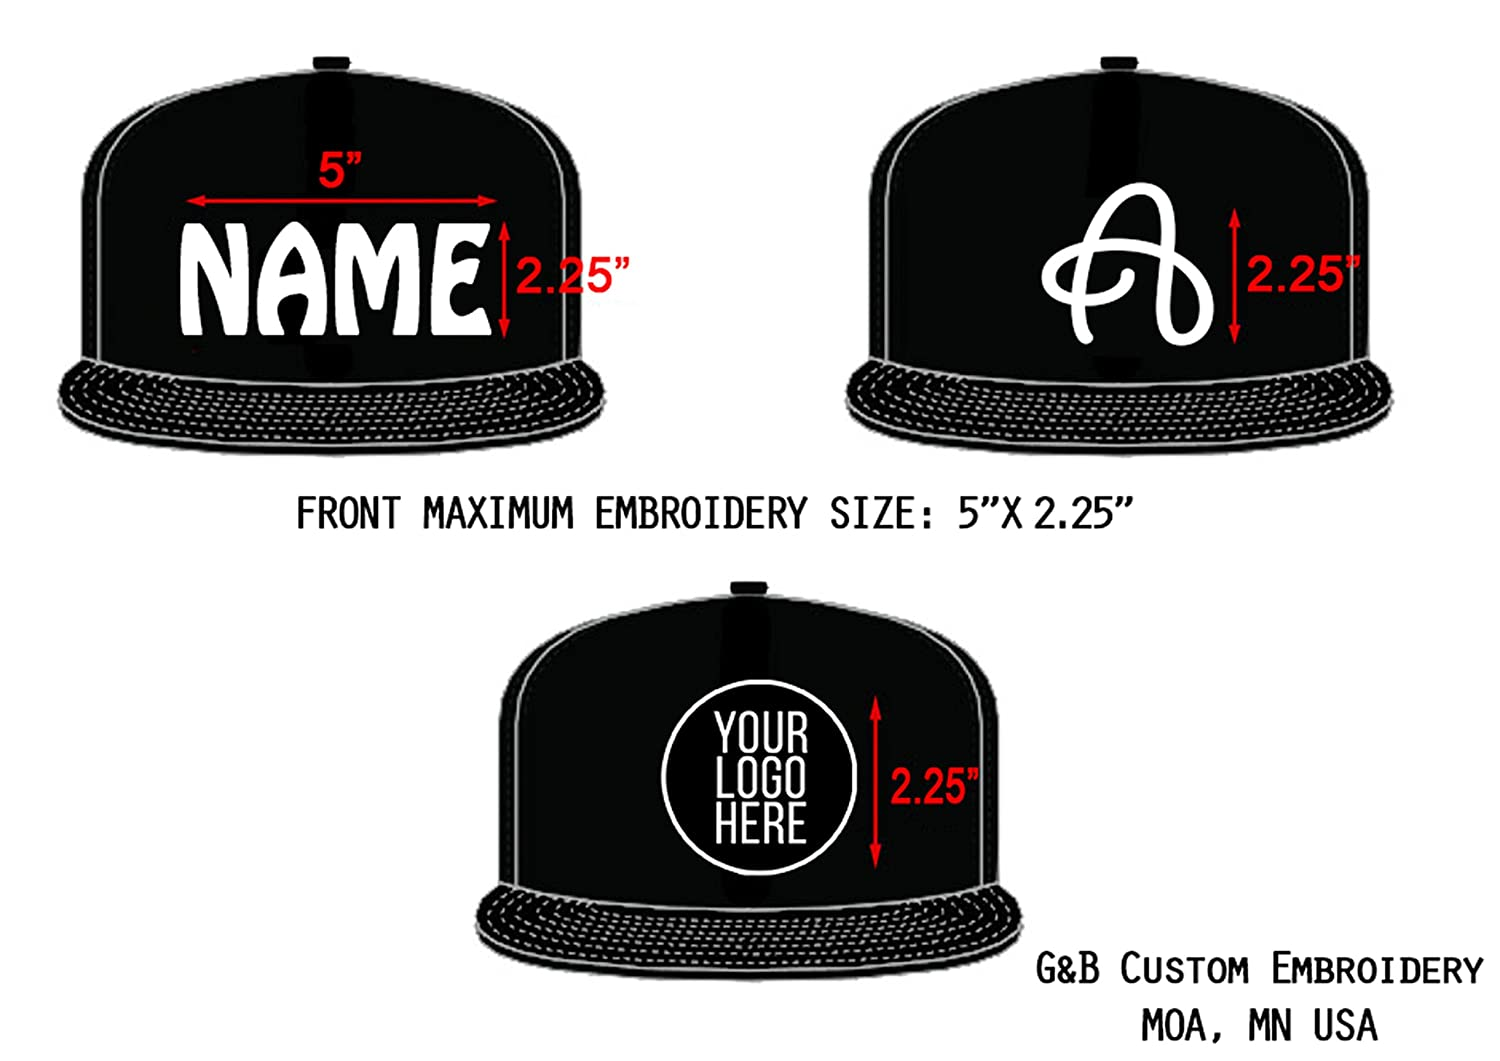 95b93e2655ac0 Amazon.com  Yupoong Custom Hat. 6089M Snapback. Embroidered. Place Your Own  Text or Company Name (Black)  Clothing